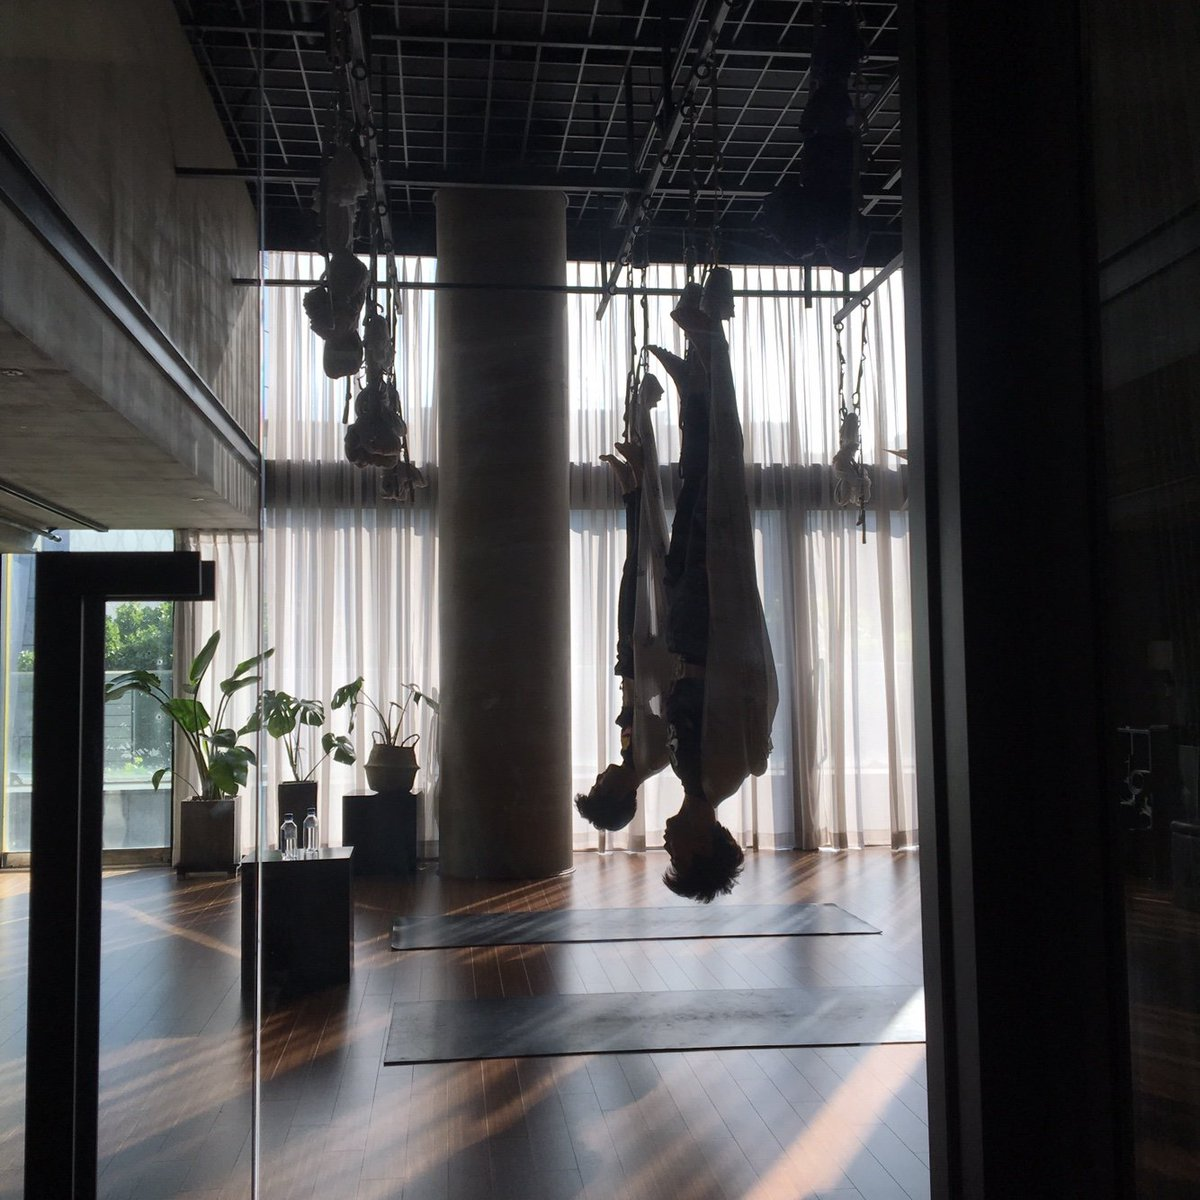 The world is even beautiful upside down. And so is this photo from our new JCC video with Mark. Go check it out!✌️- Johnny youtu.be/dsHkeNX3pLA #NCT #NCT127 #JCC #JOHNNY #MARK #FlyingYoga #AerialYoga